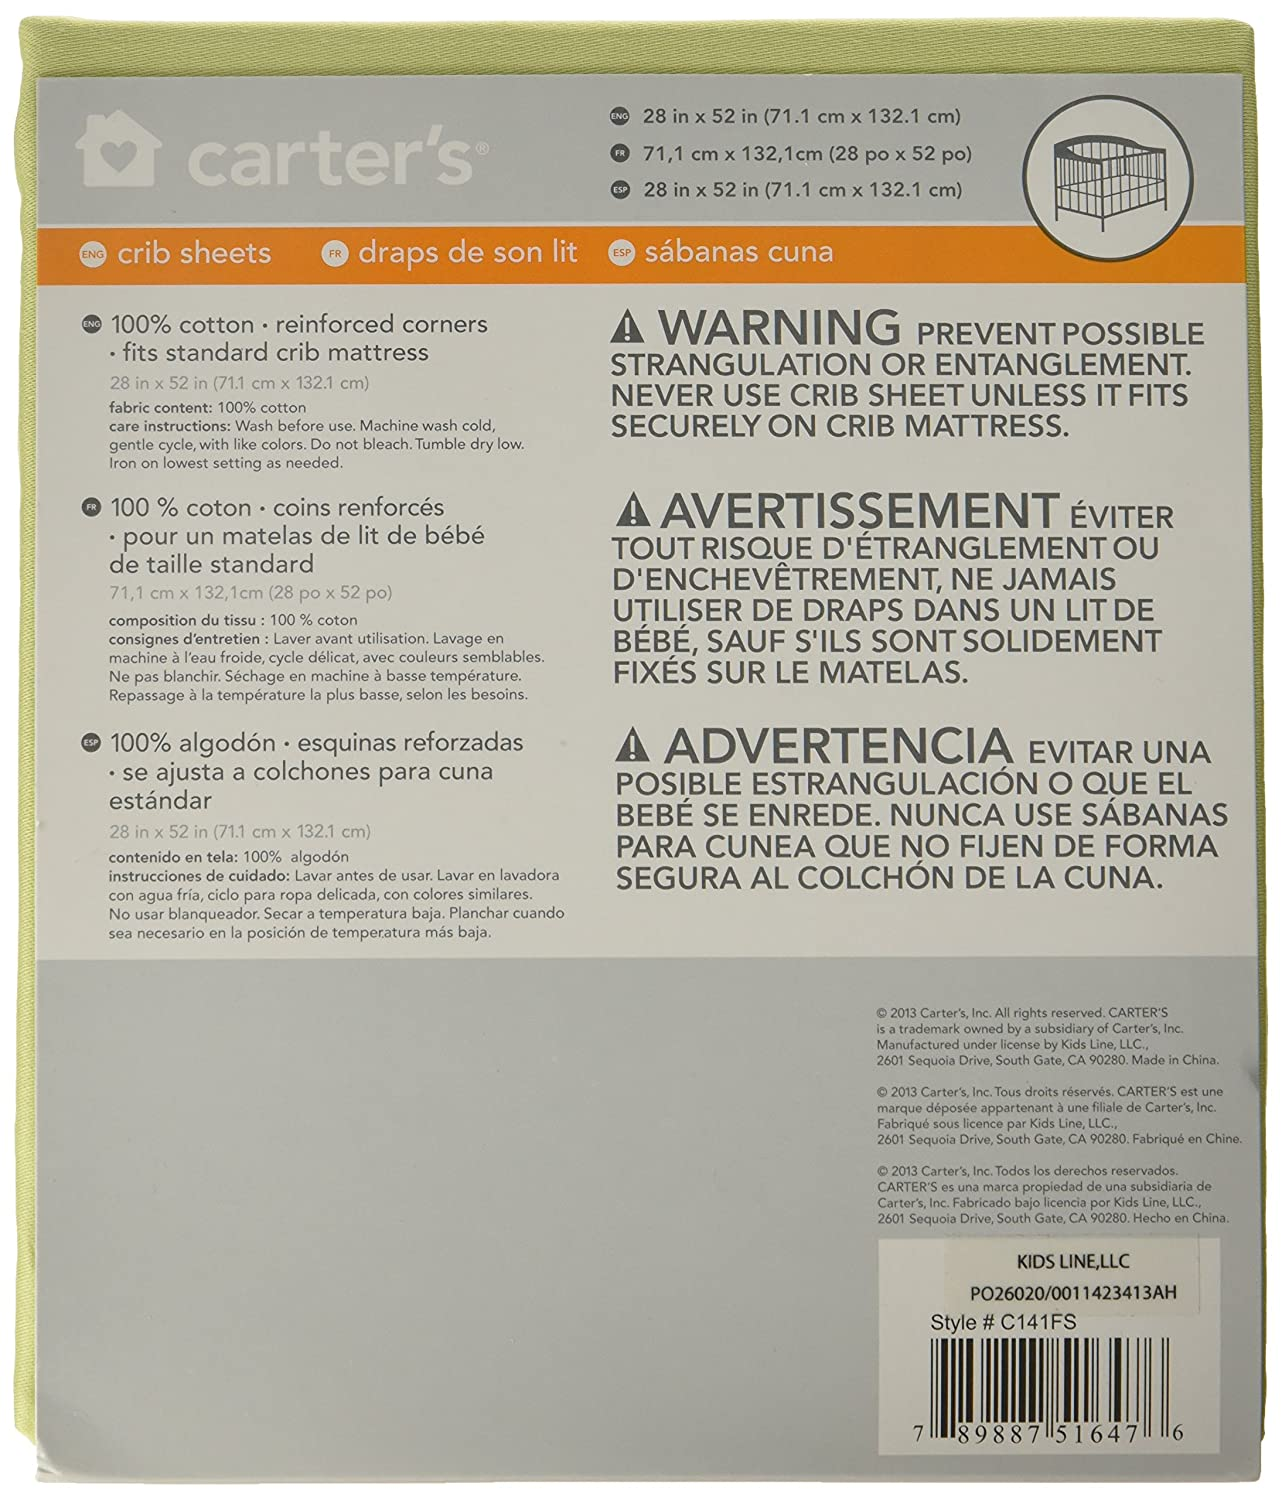 Amazon.com : Carters Satten Fitted Crib Sheet, Apple Green (Discontinued by Manufacturer) : Nursery Bedding : Baby